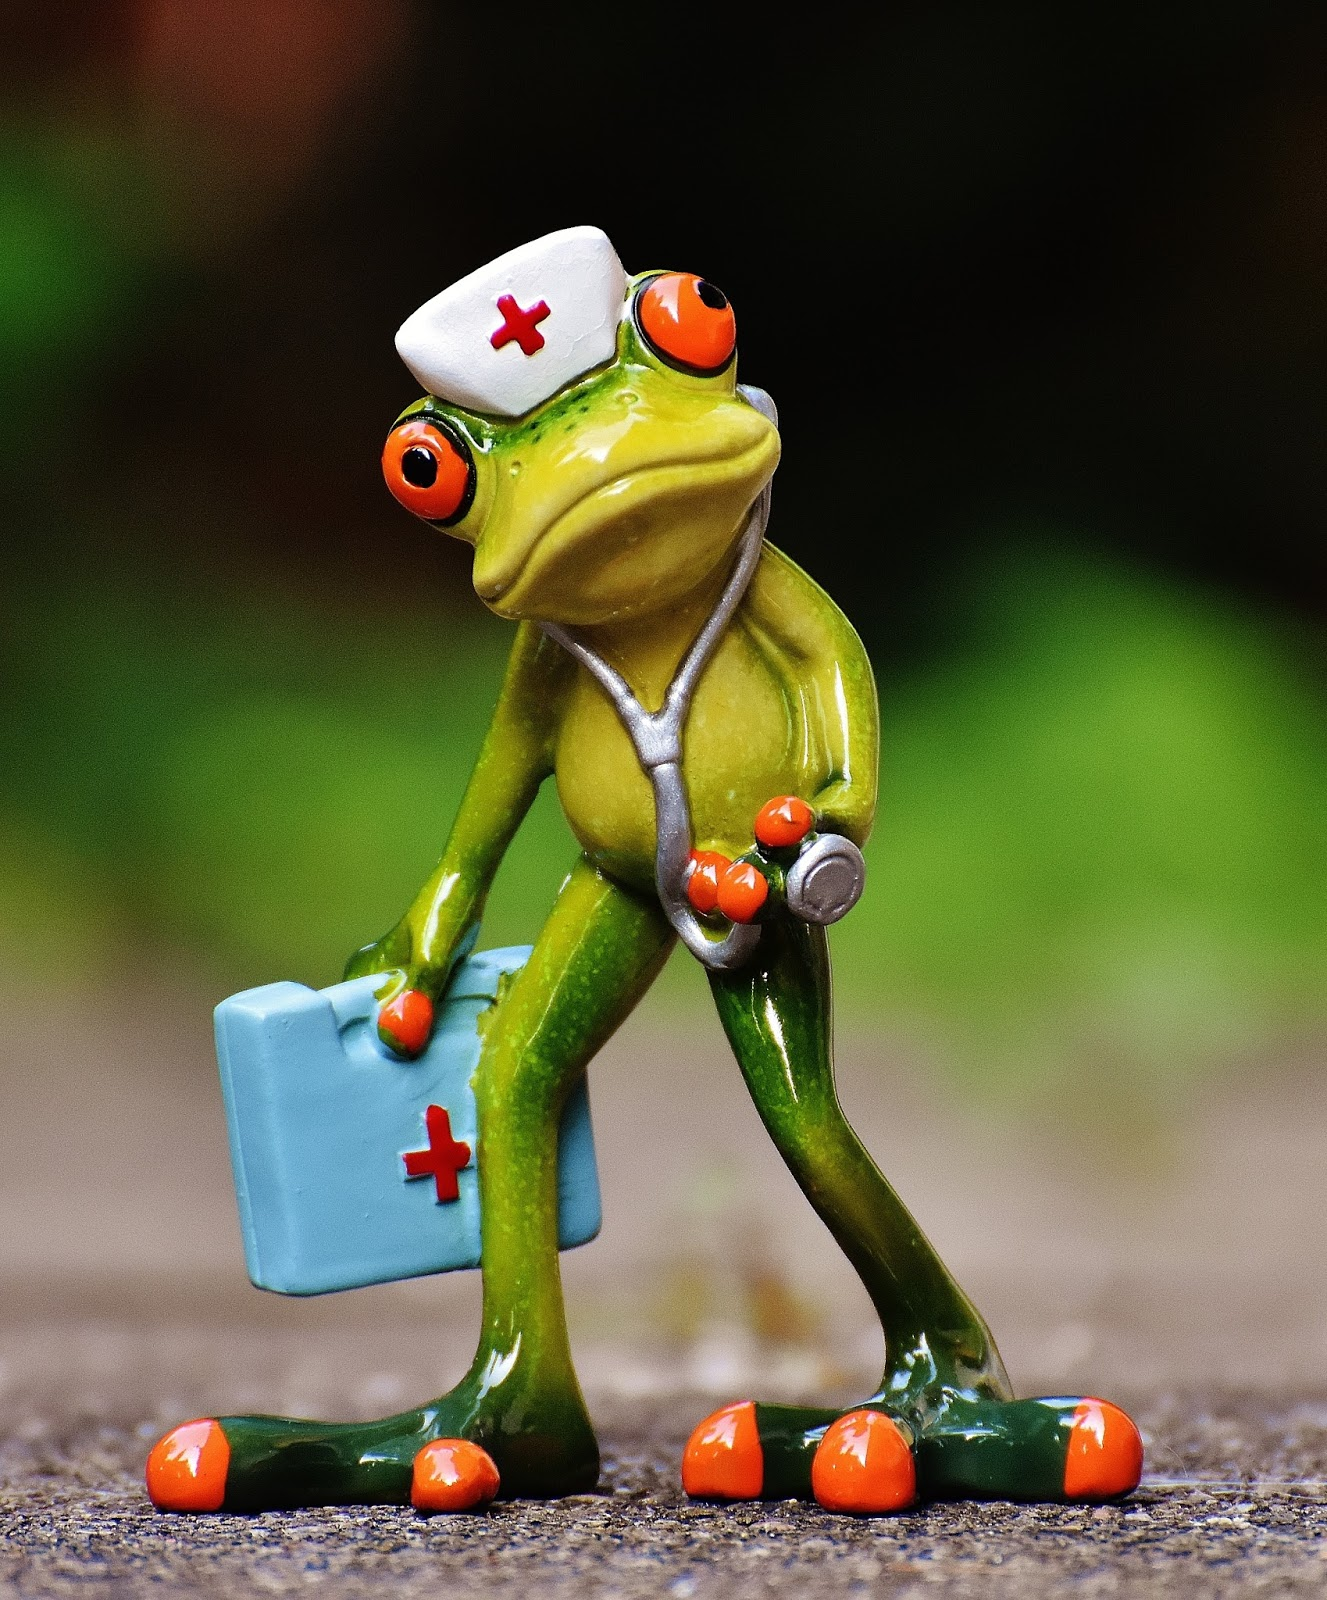 Funny picture of a frog doctor.